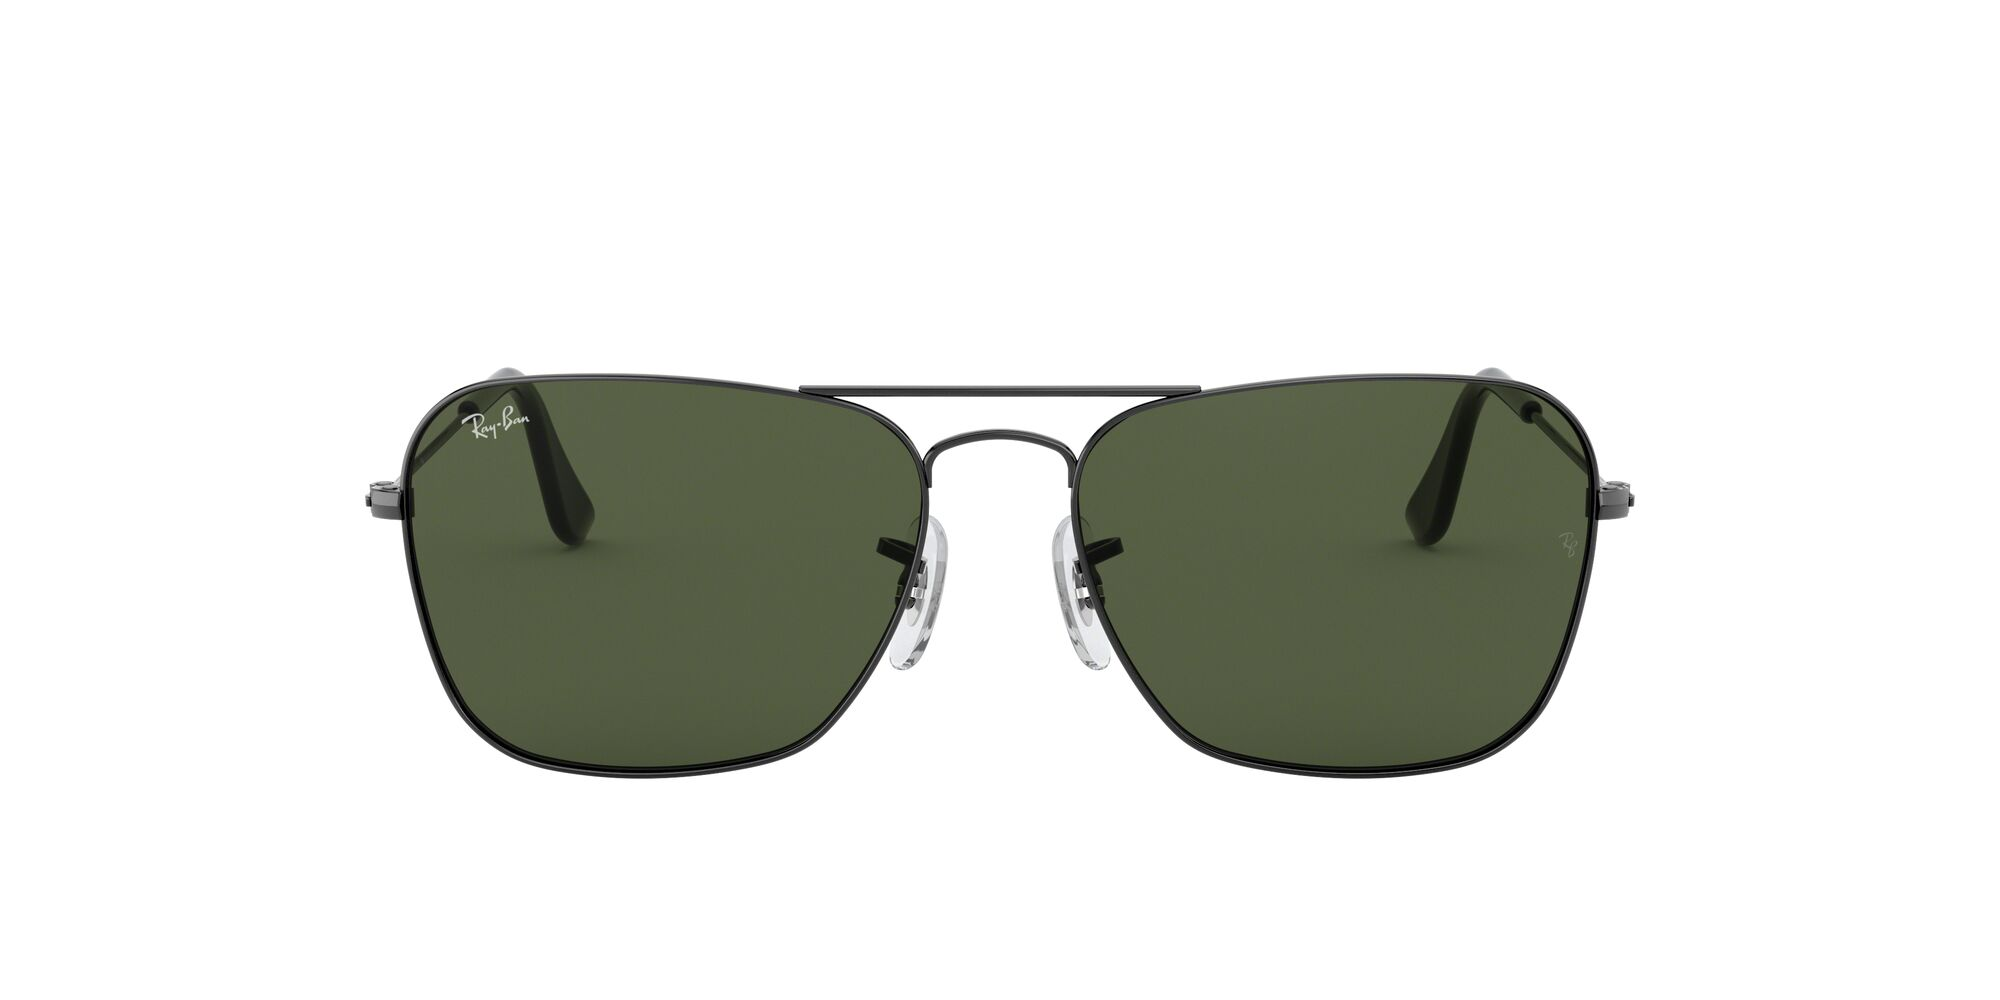 Front Ray-Ban Ray-Ban RB3136 004 55/15 Grijs/Groen